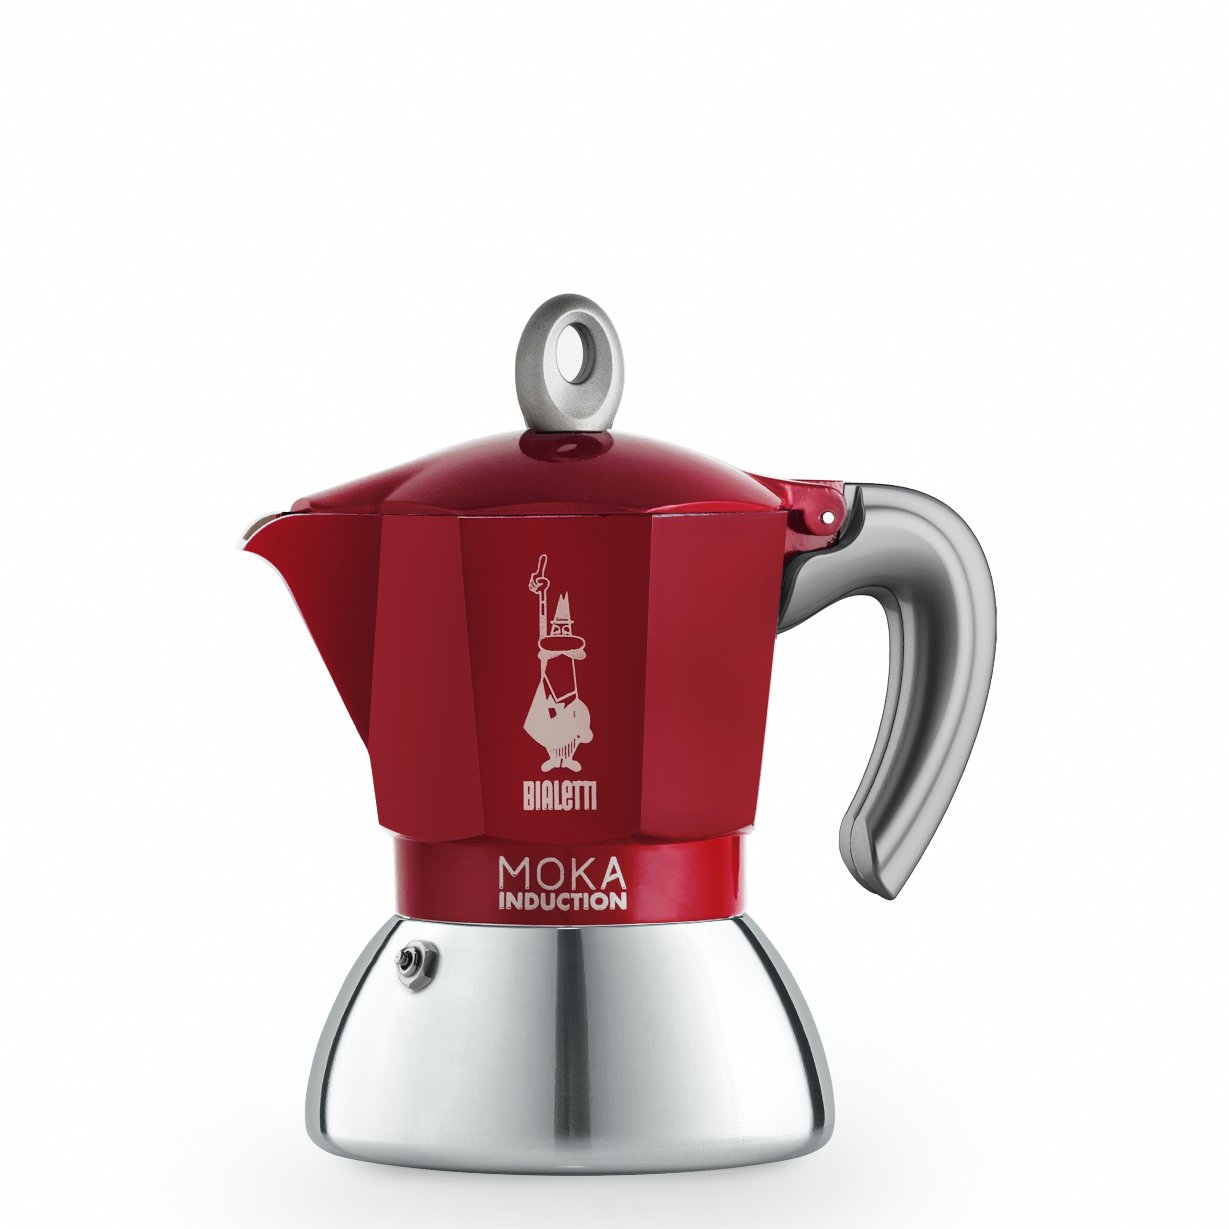 Bialetti - Moka Induction Edition 2.0 - 2 Cups - Red (6942)